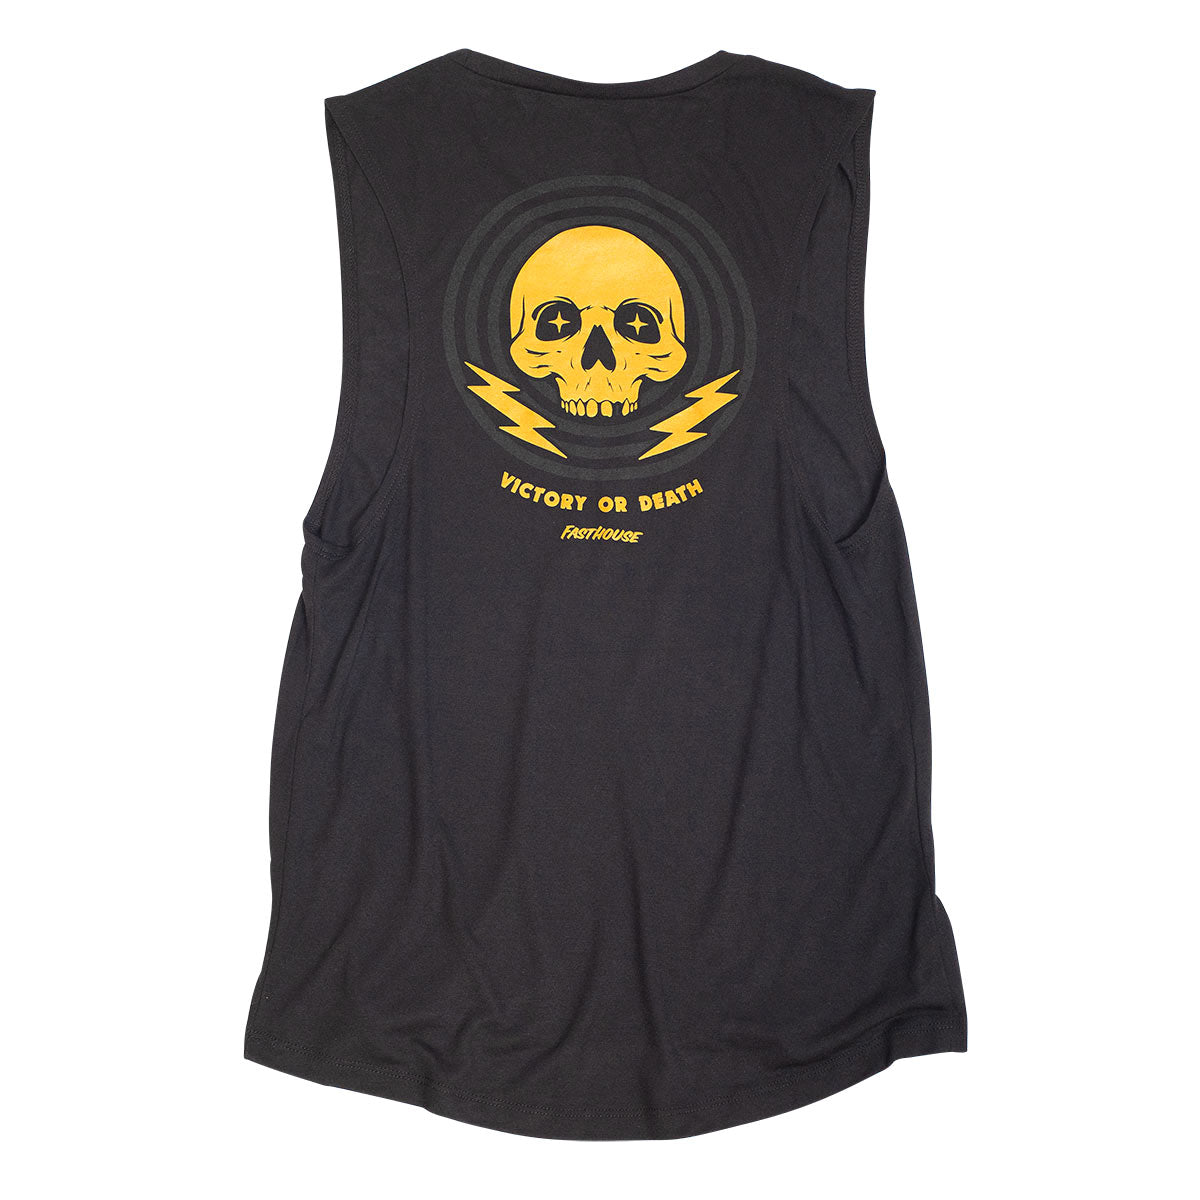 Victory or Death Women's Muscle Tank - Black